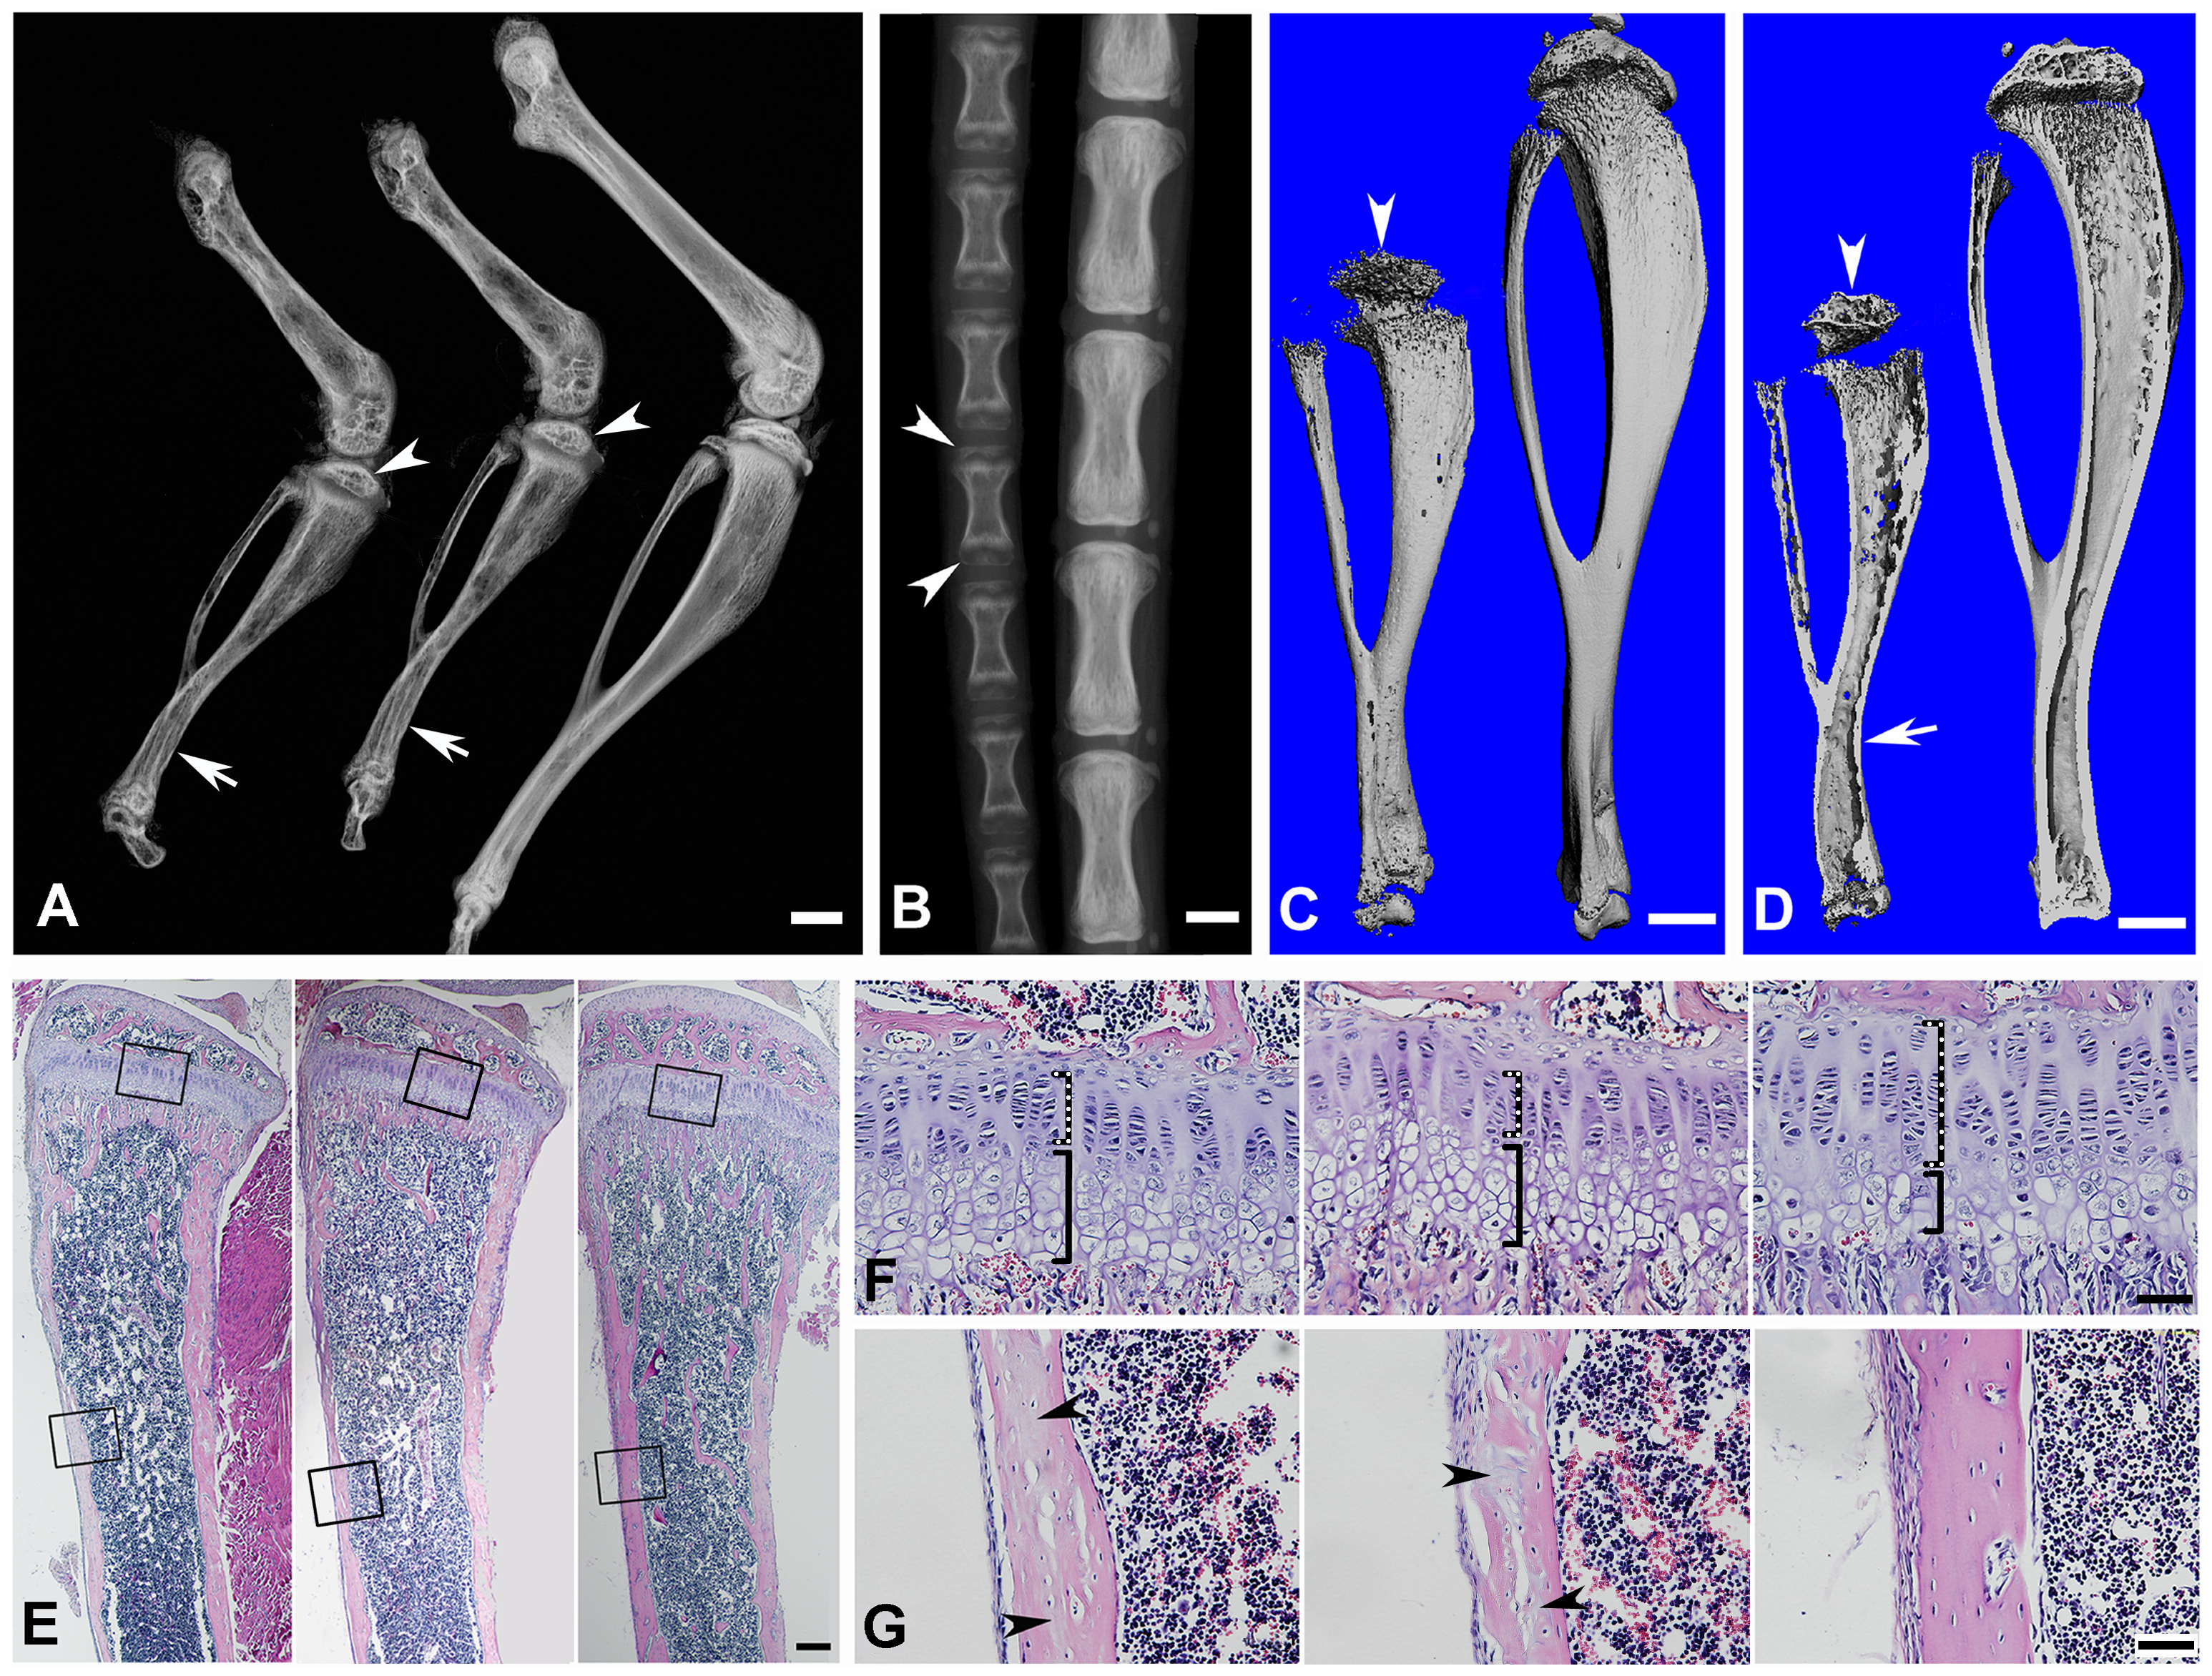 Bone defects in the 6-week-old <i>Fam20c</i>-cKO mice revealed by X-ray and histology.